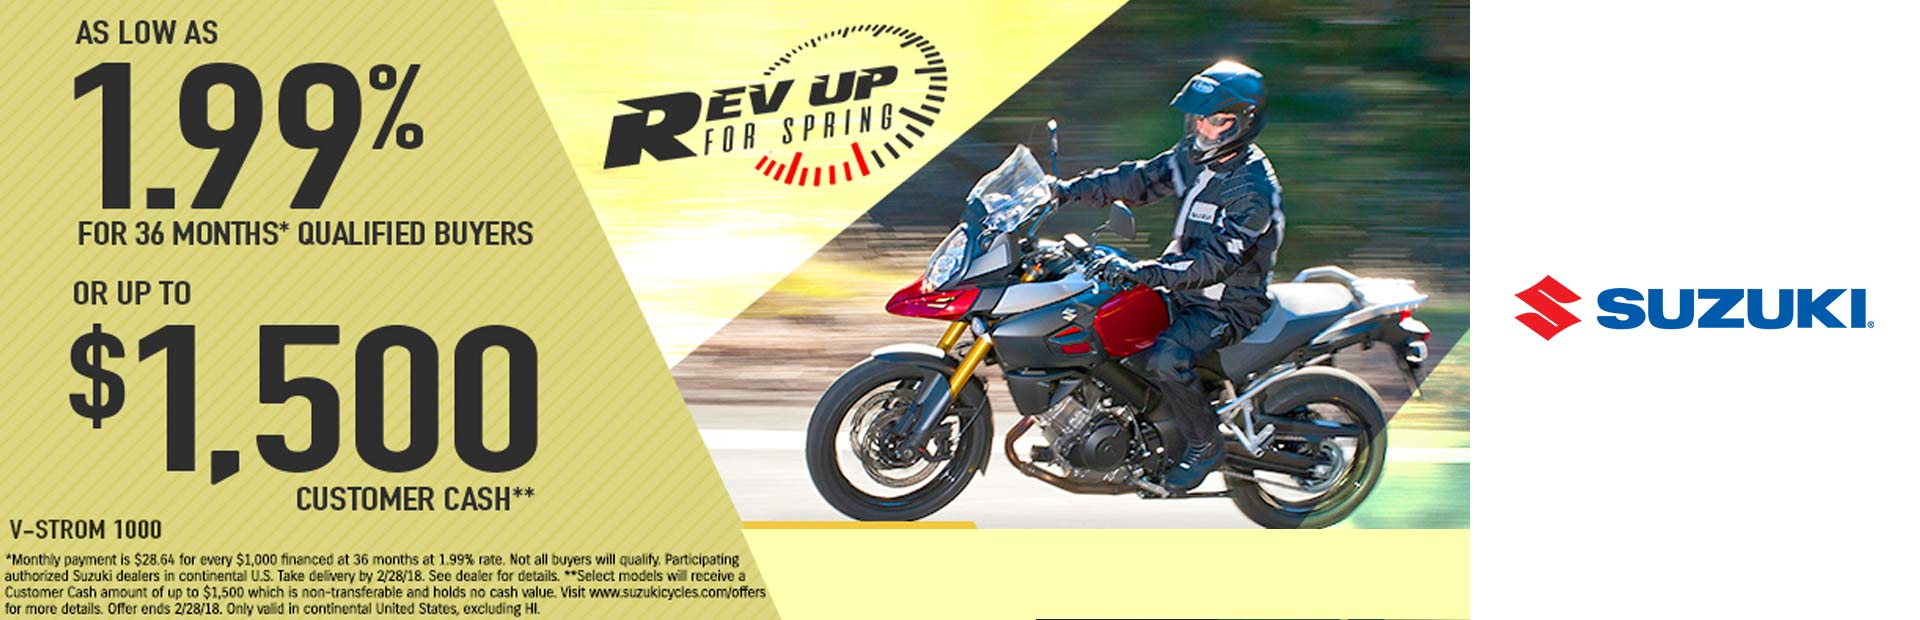 Suzuki: Rev Up for Spring